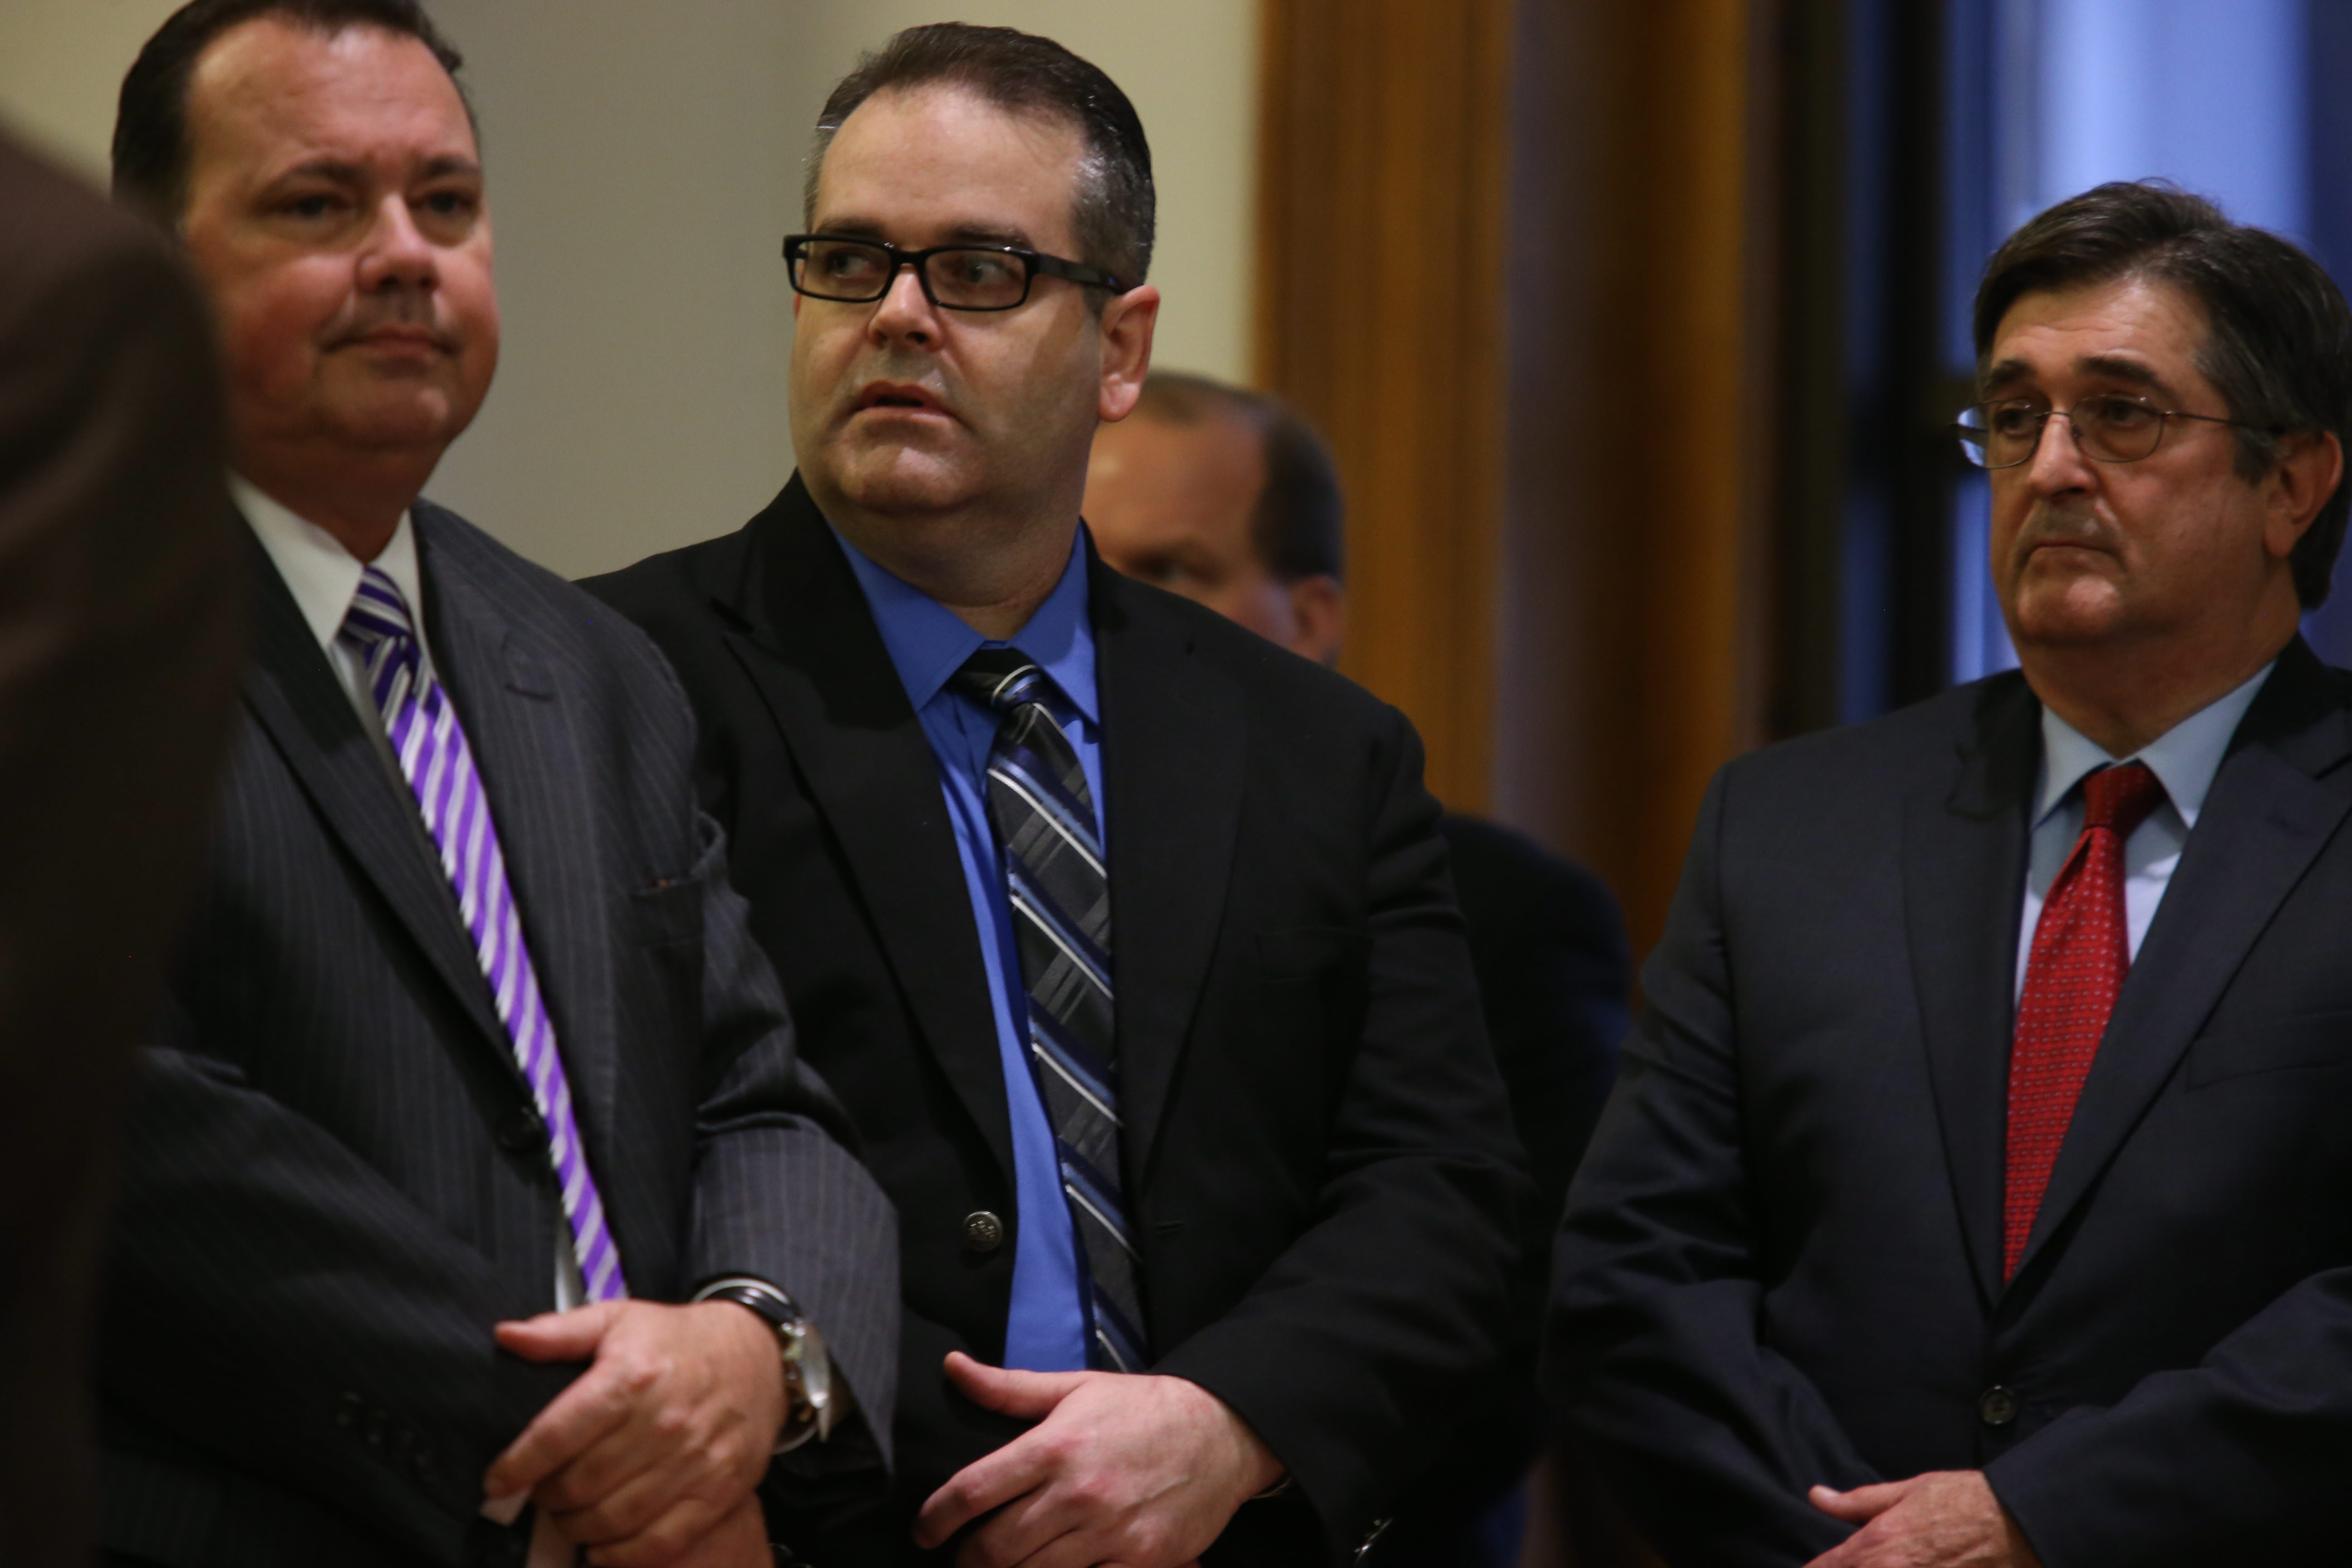 Anthony Taglianetti, center, listens to the jury read the verdict at the Chautauqua County Courthouse in Mayville on Friday.